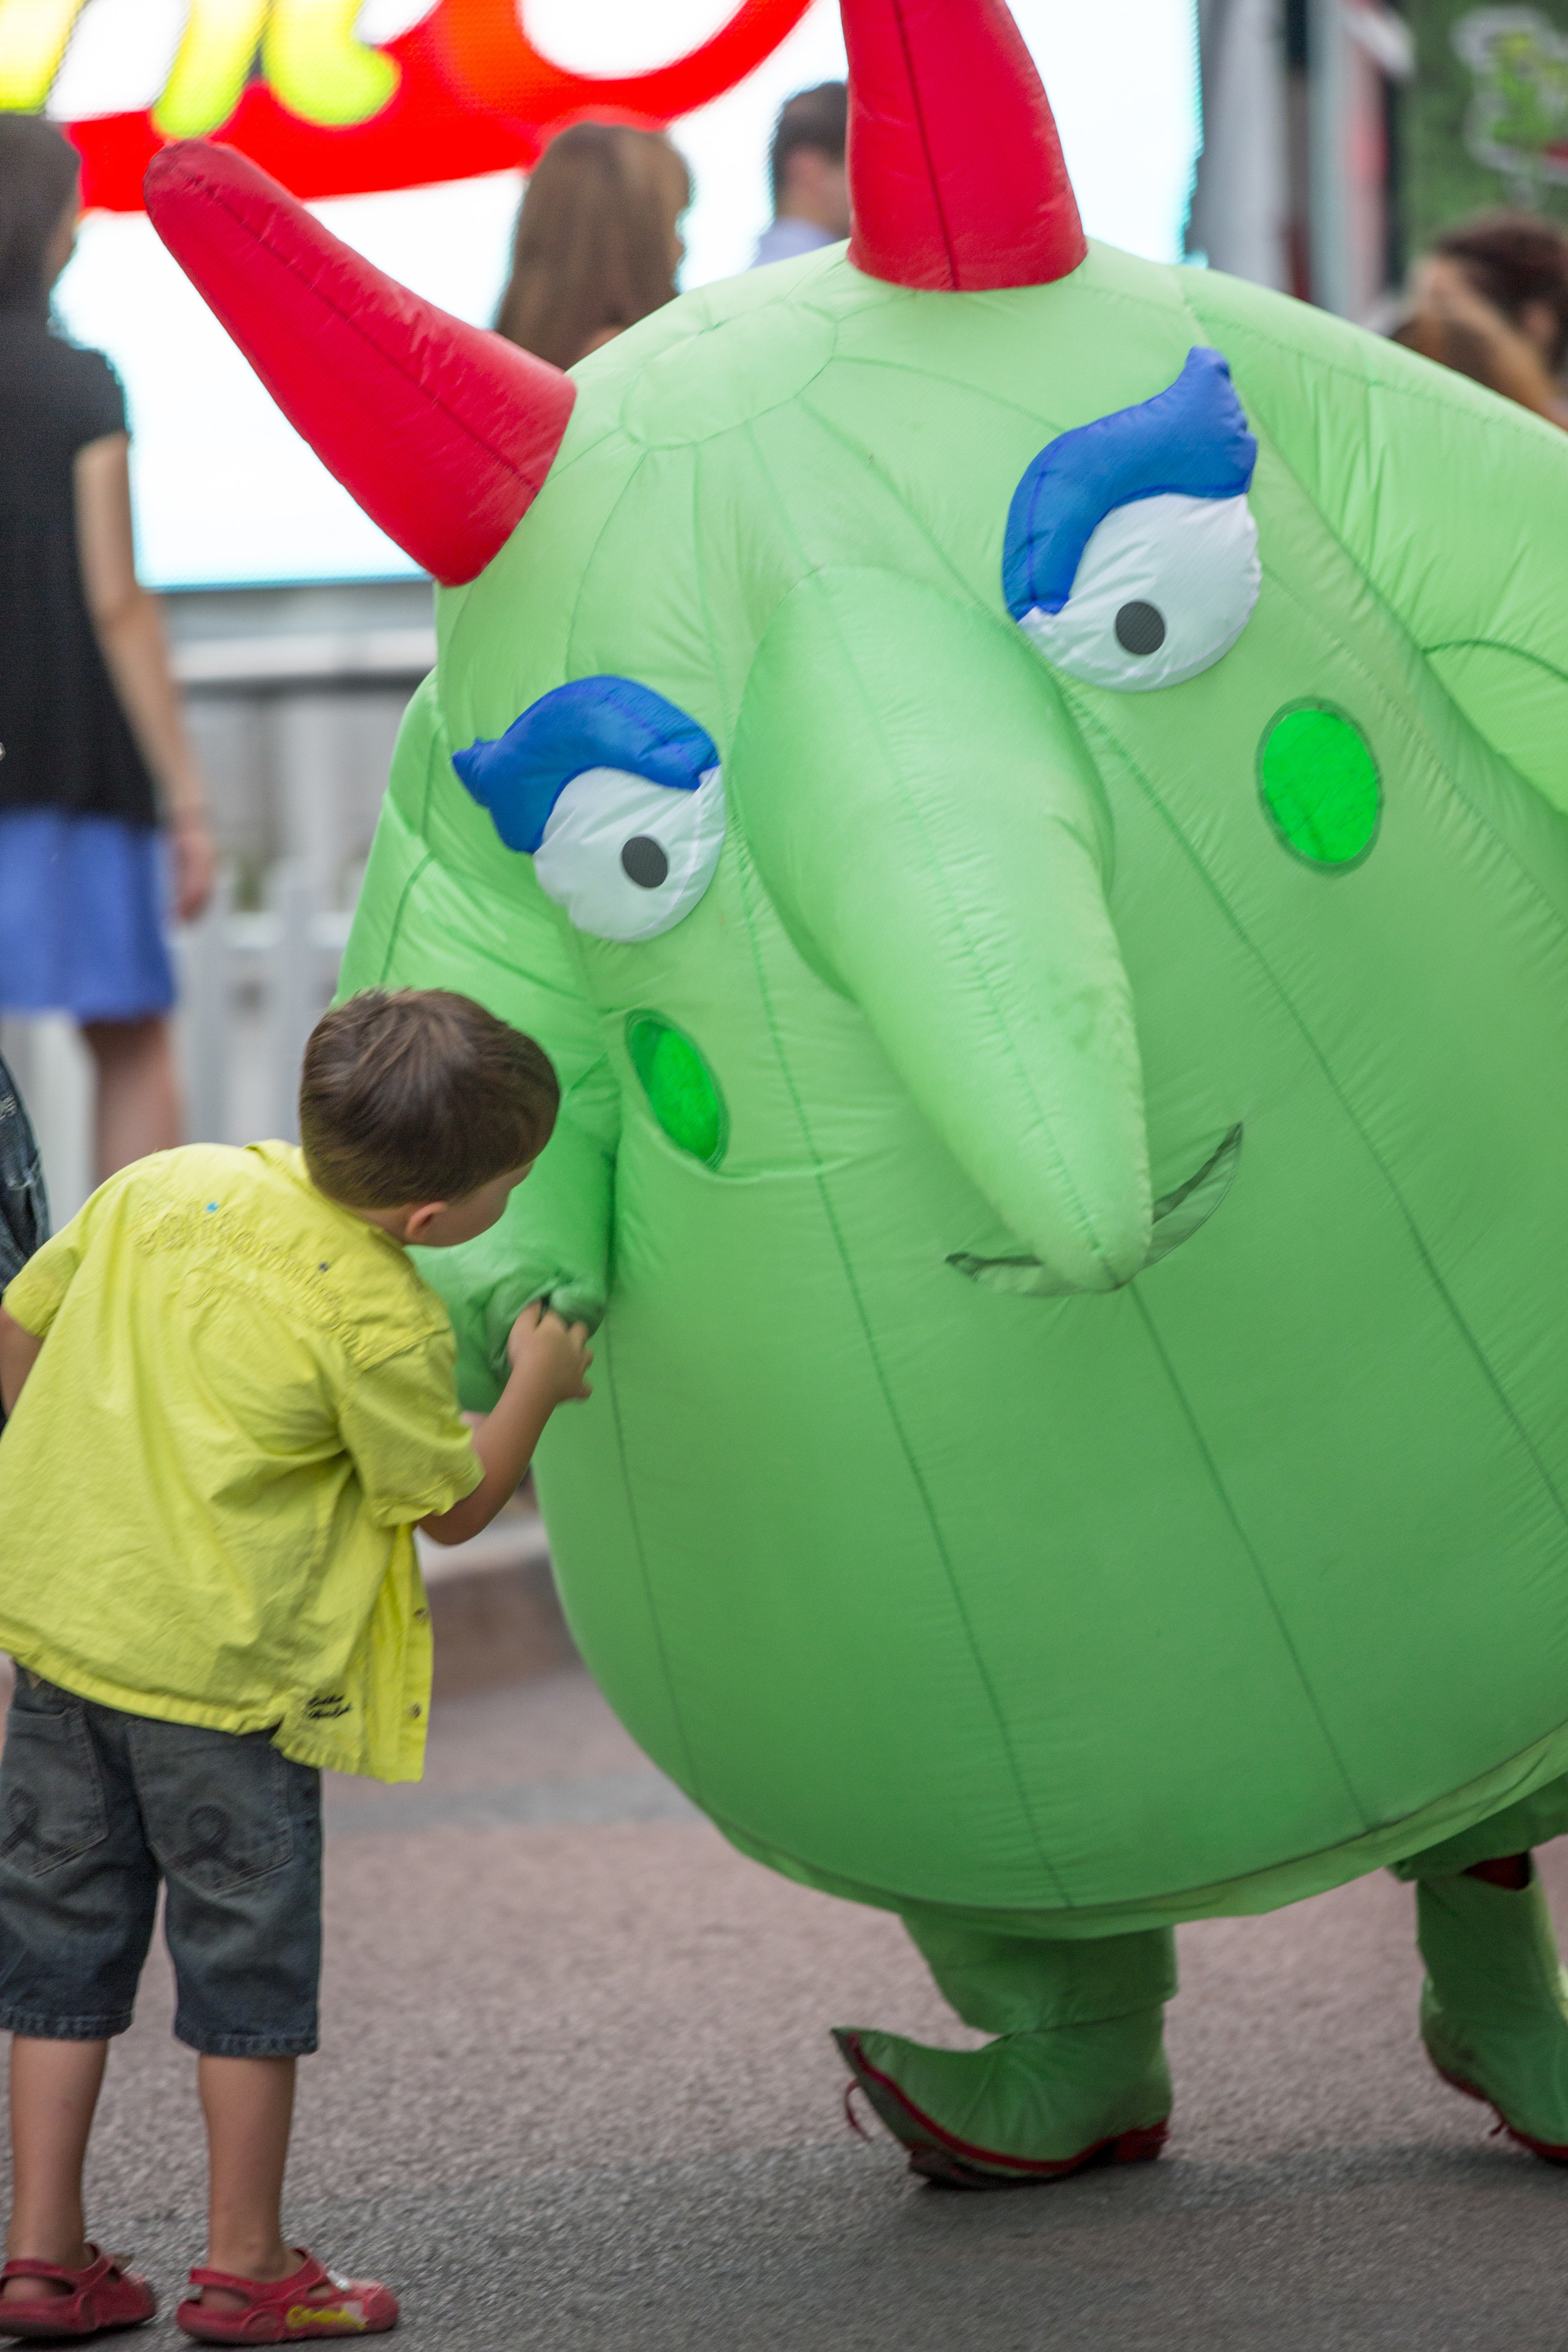 Nobody escapes the fun at the Just for Laughs Festival. Photo Courtesy of Tourism Montreal - A Wayward Weekend in Montréal